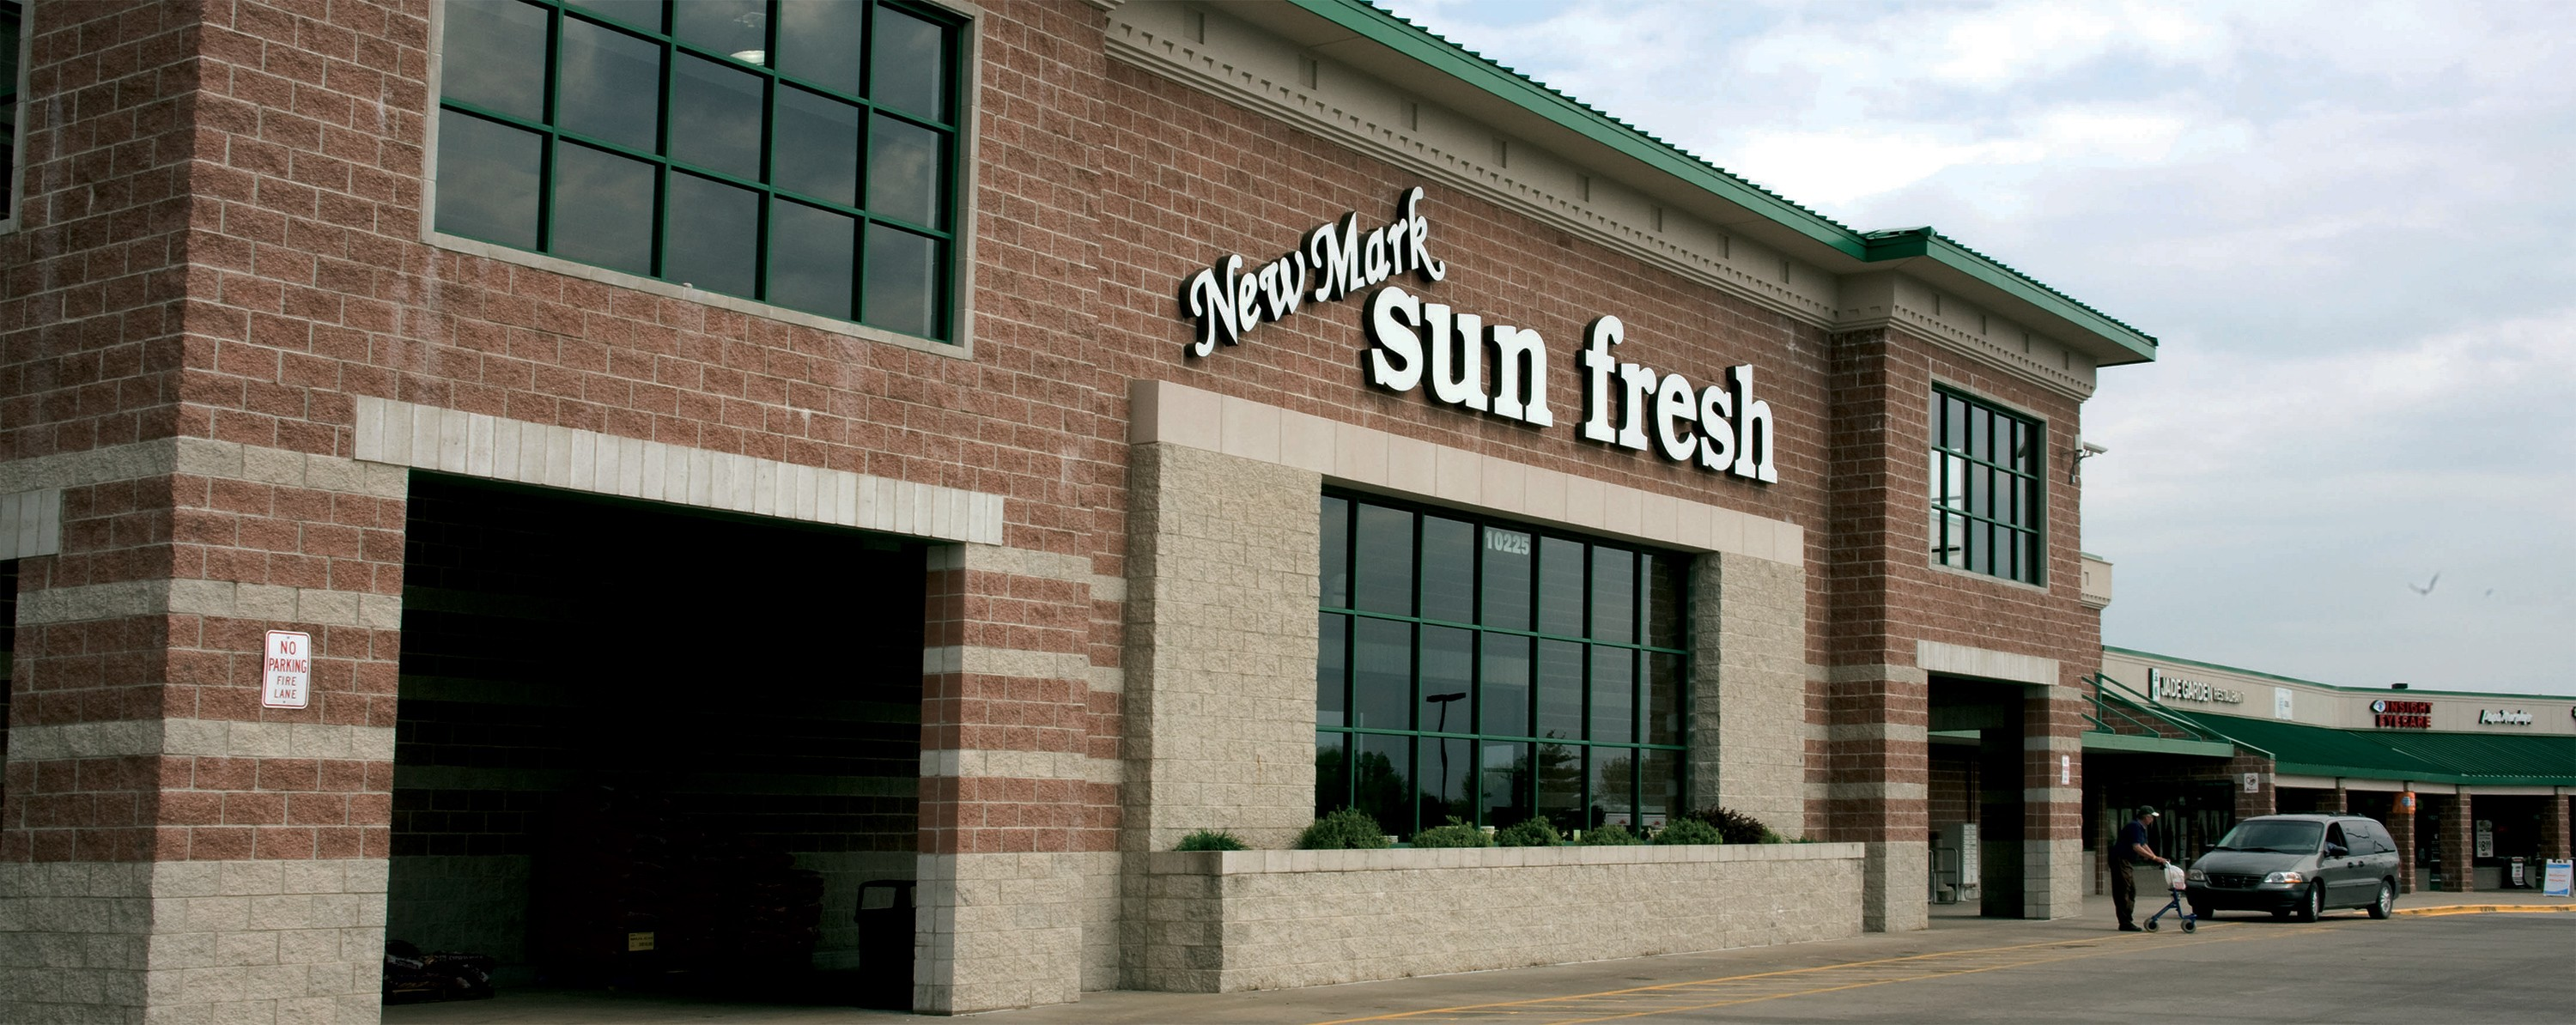 New Mark Sun Fresh Market - 10225 N Oak Trafficway Kansas City, MO